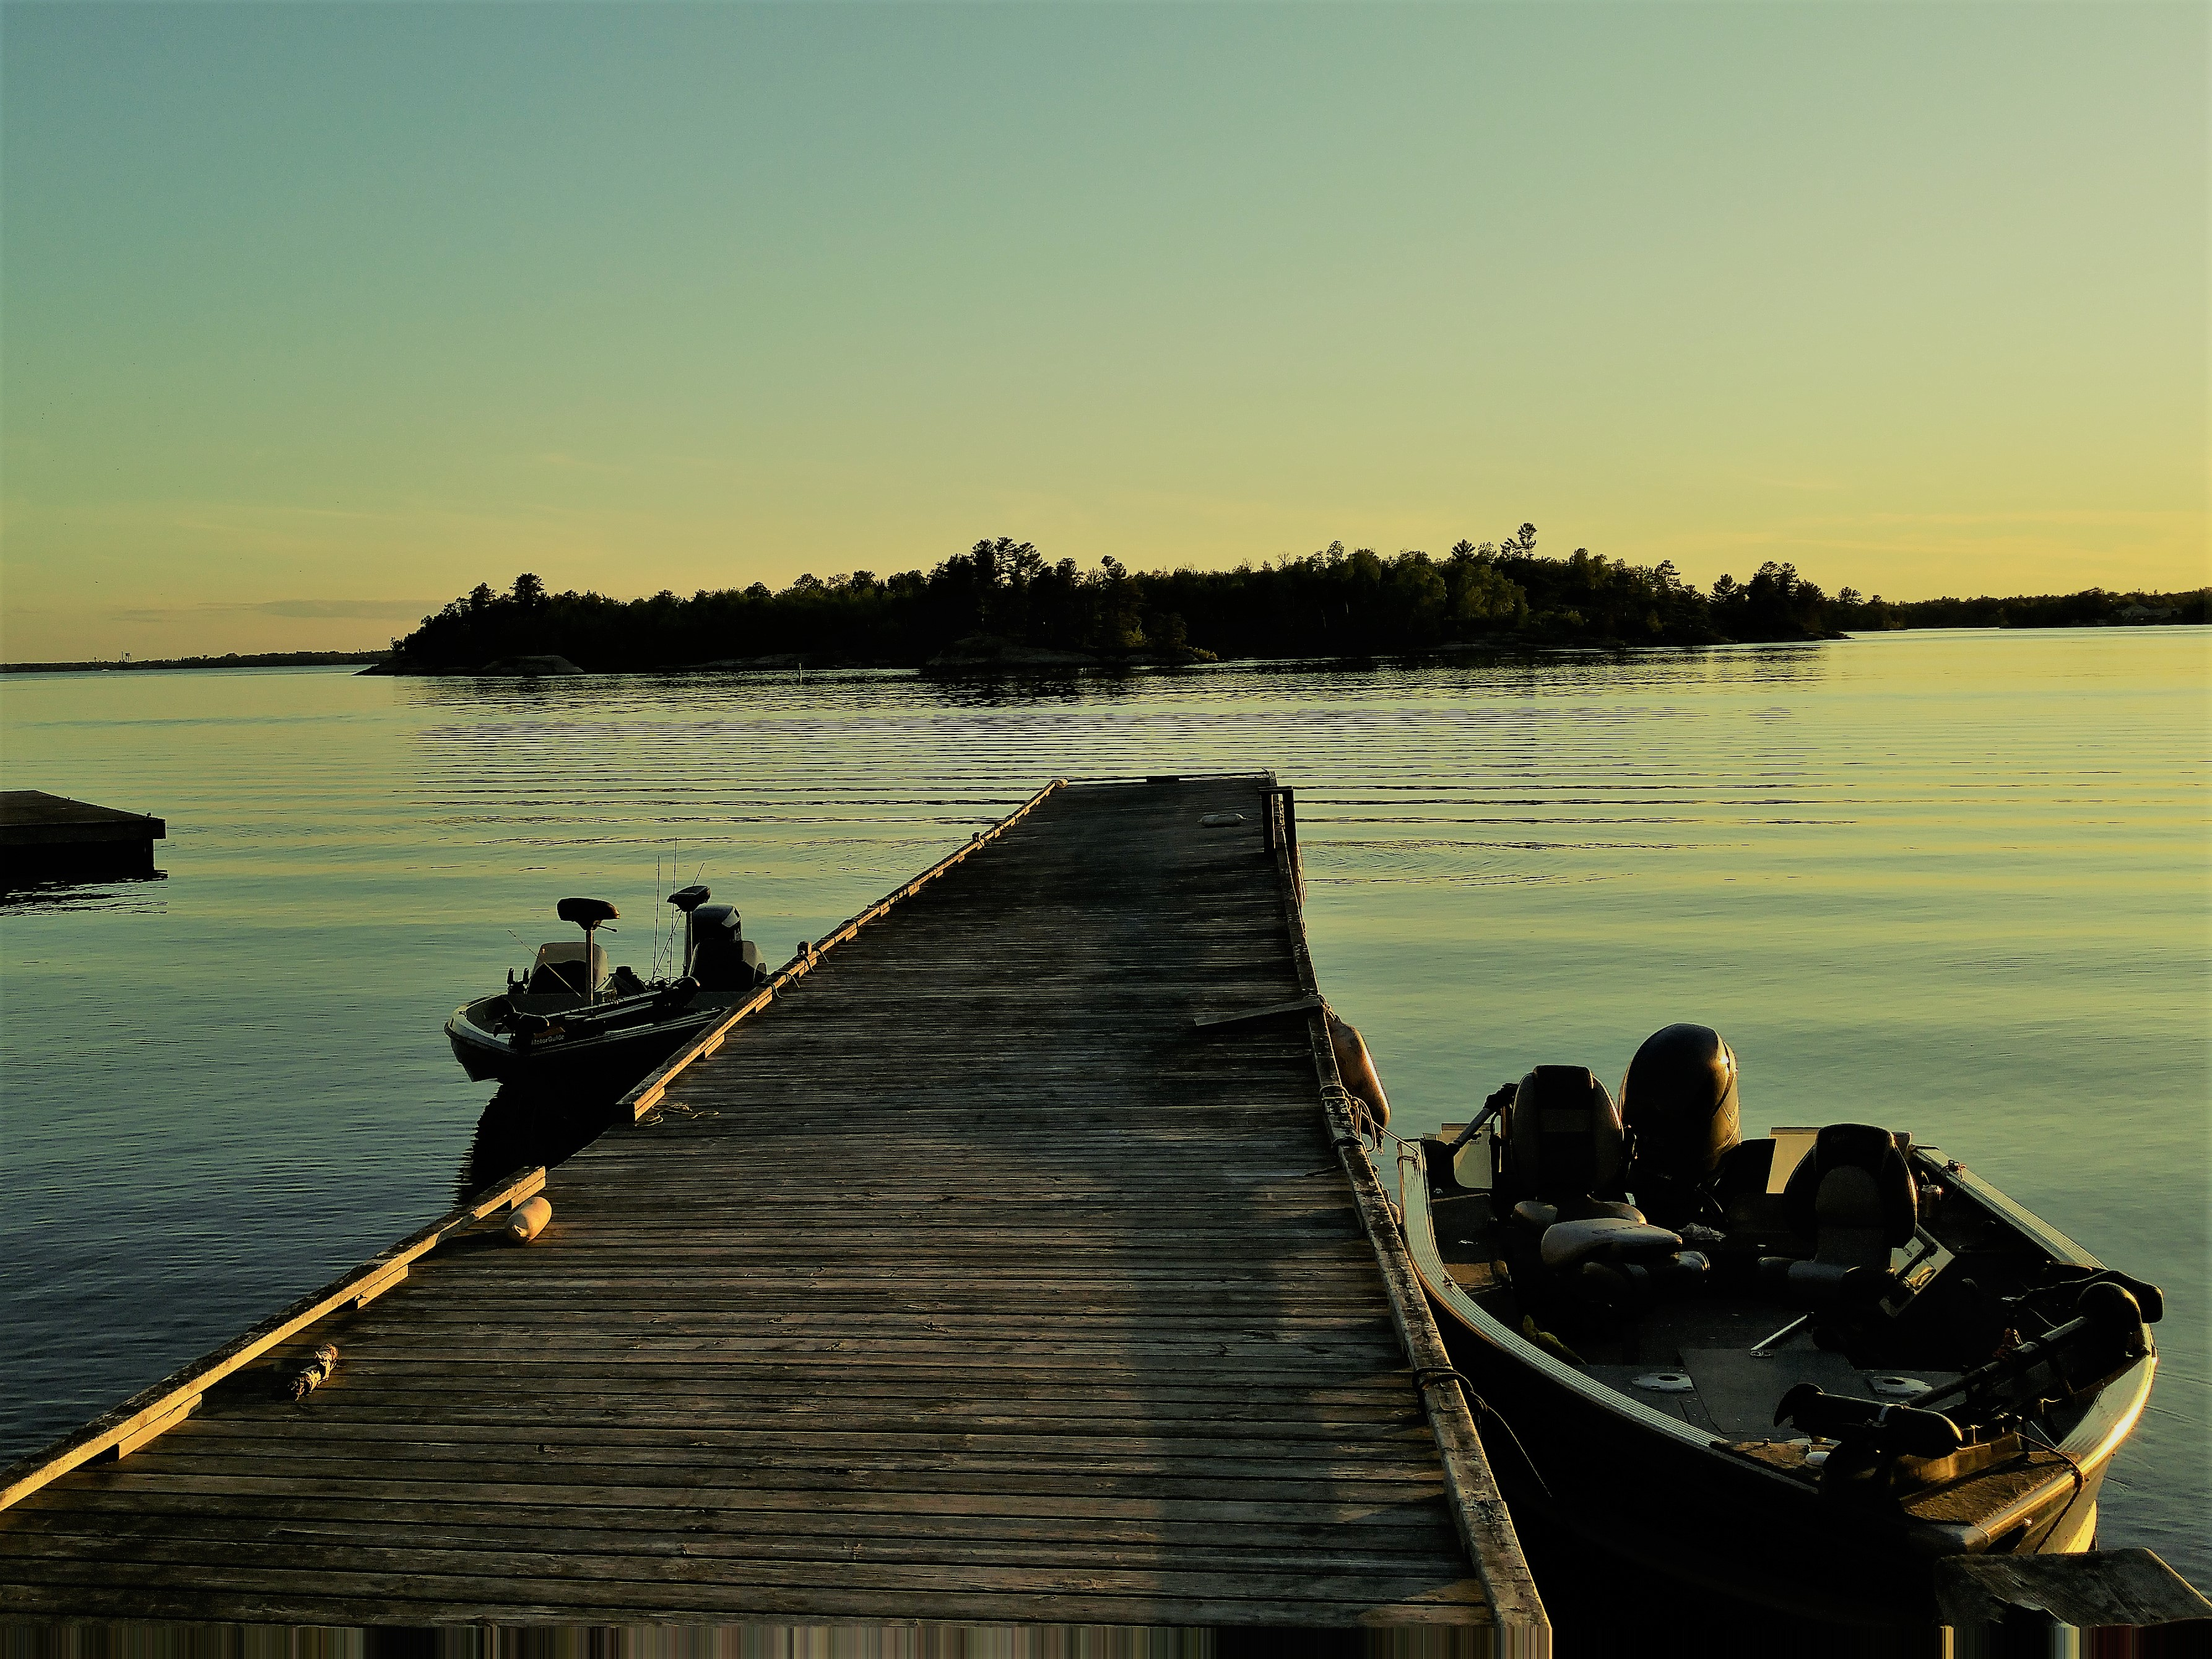 The dock simply beckons to every fisherman that visits here, to grab your rod, cast a lure, and enjoy the wild nature of this place that offers visitors so much wonderful food and woodsy comfort.